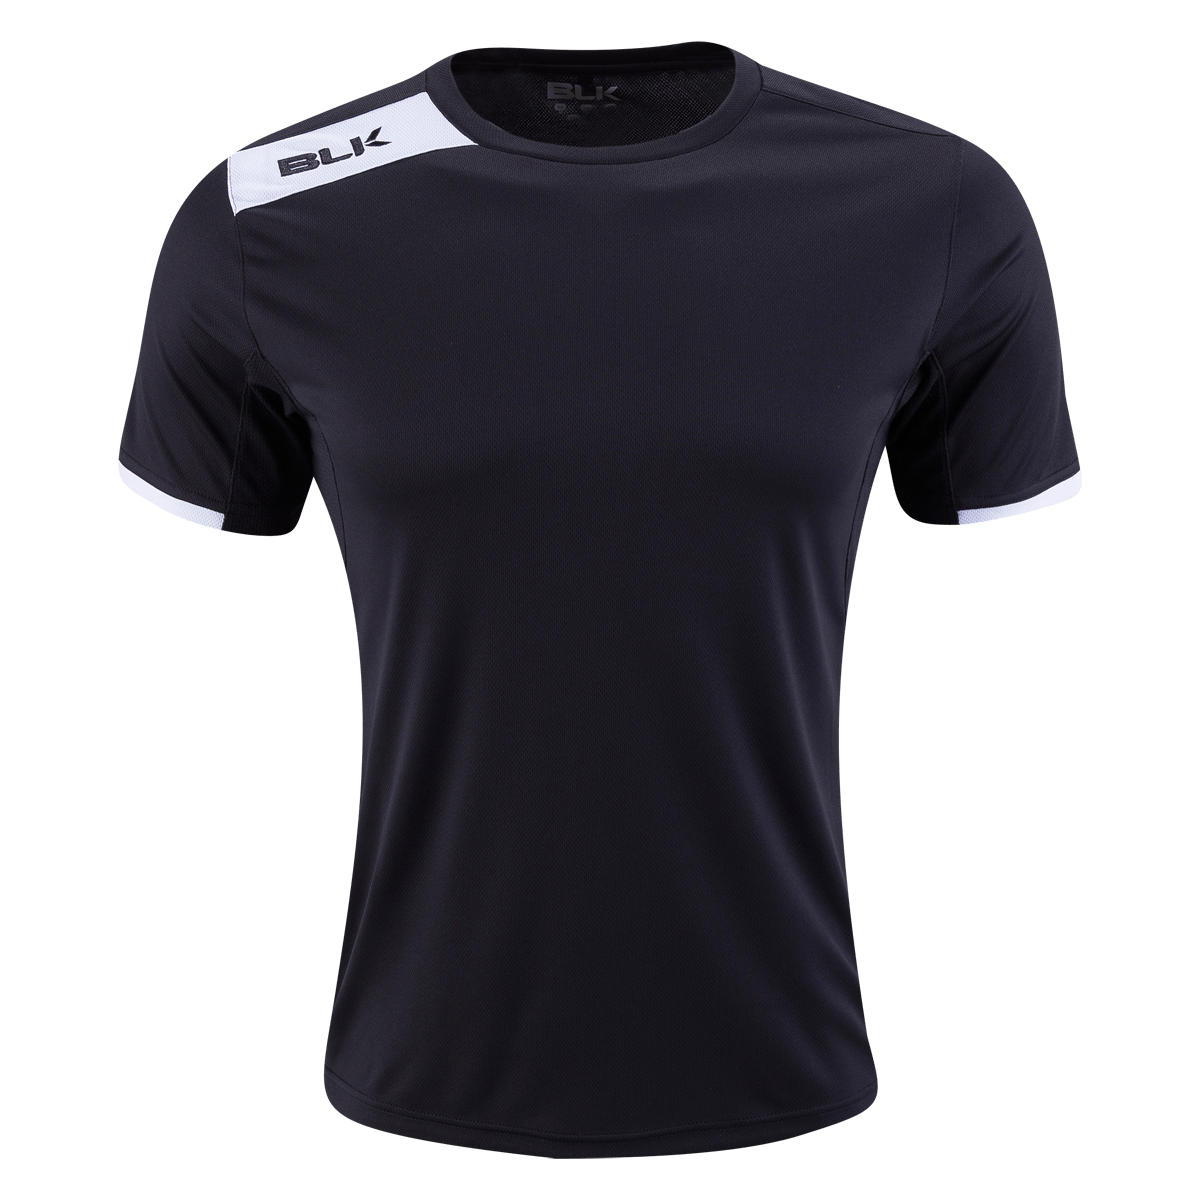 BLK Black TEK VI Rugby Training Shirt